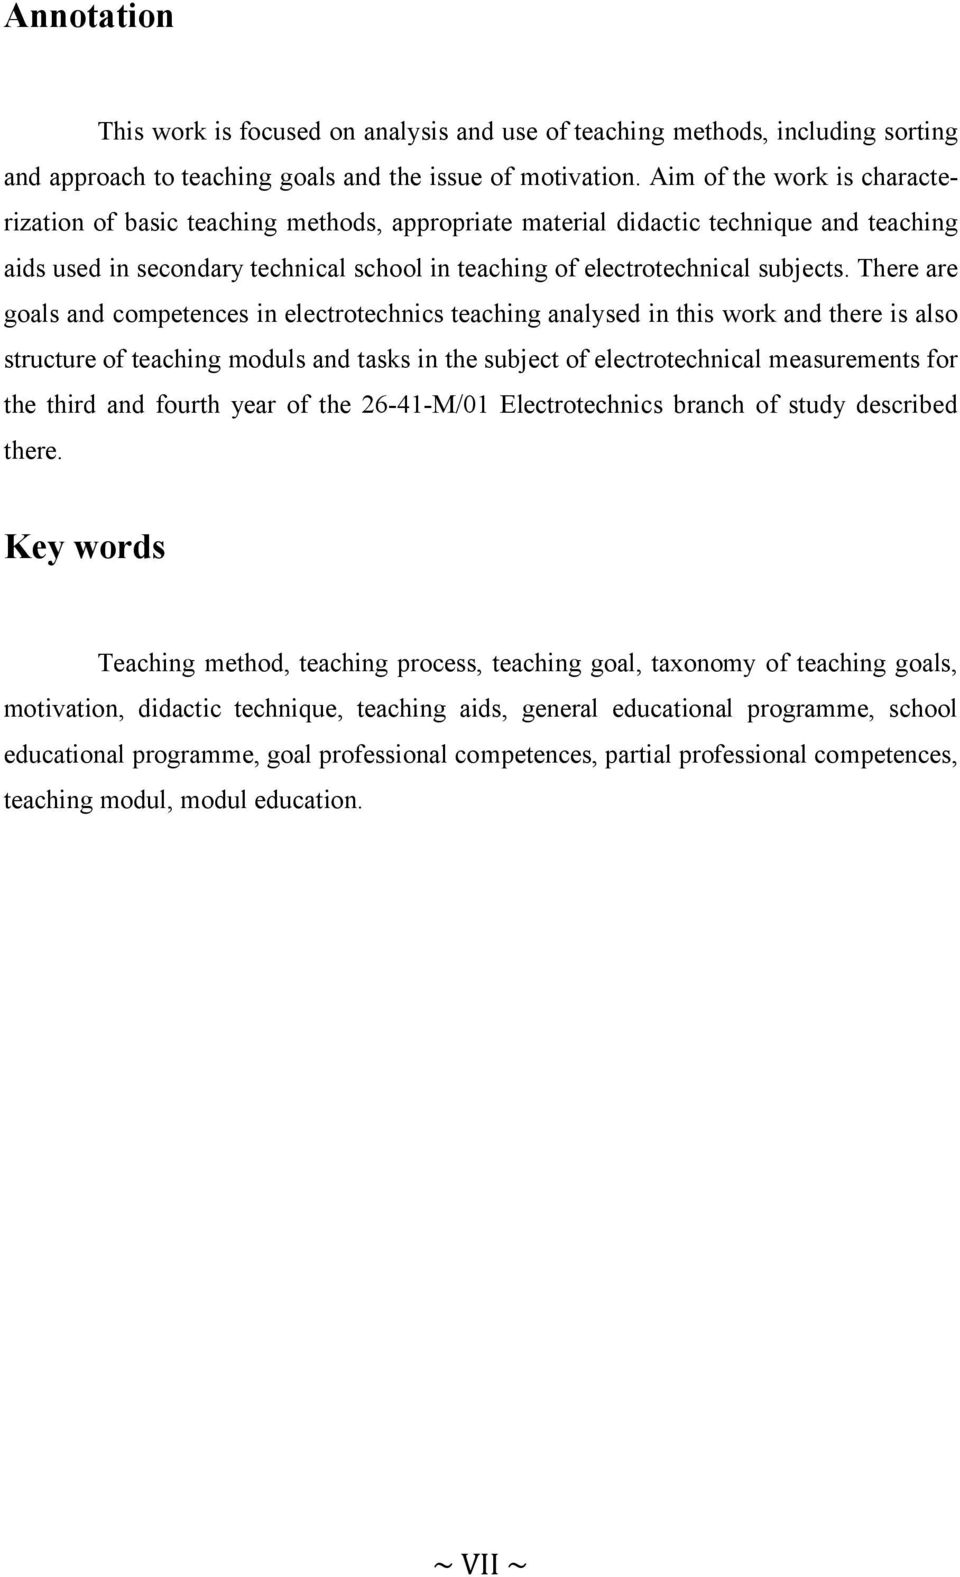 There are goals and competences in electrotechnics teaching analysed in this work and there is also structure of teaching moduls and tasks in the subject of electrotechnical measurements for the